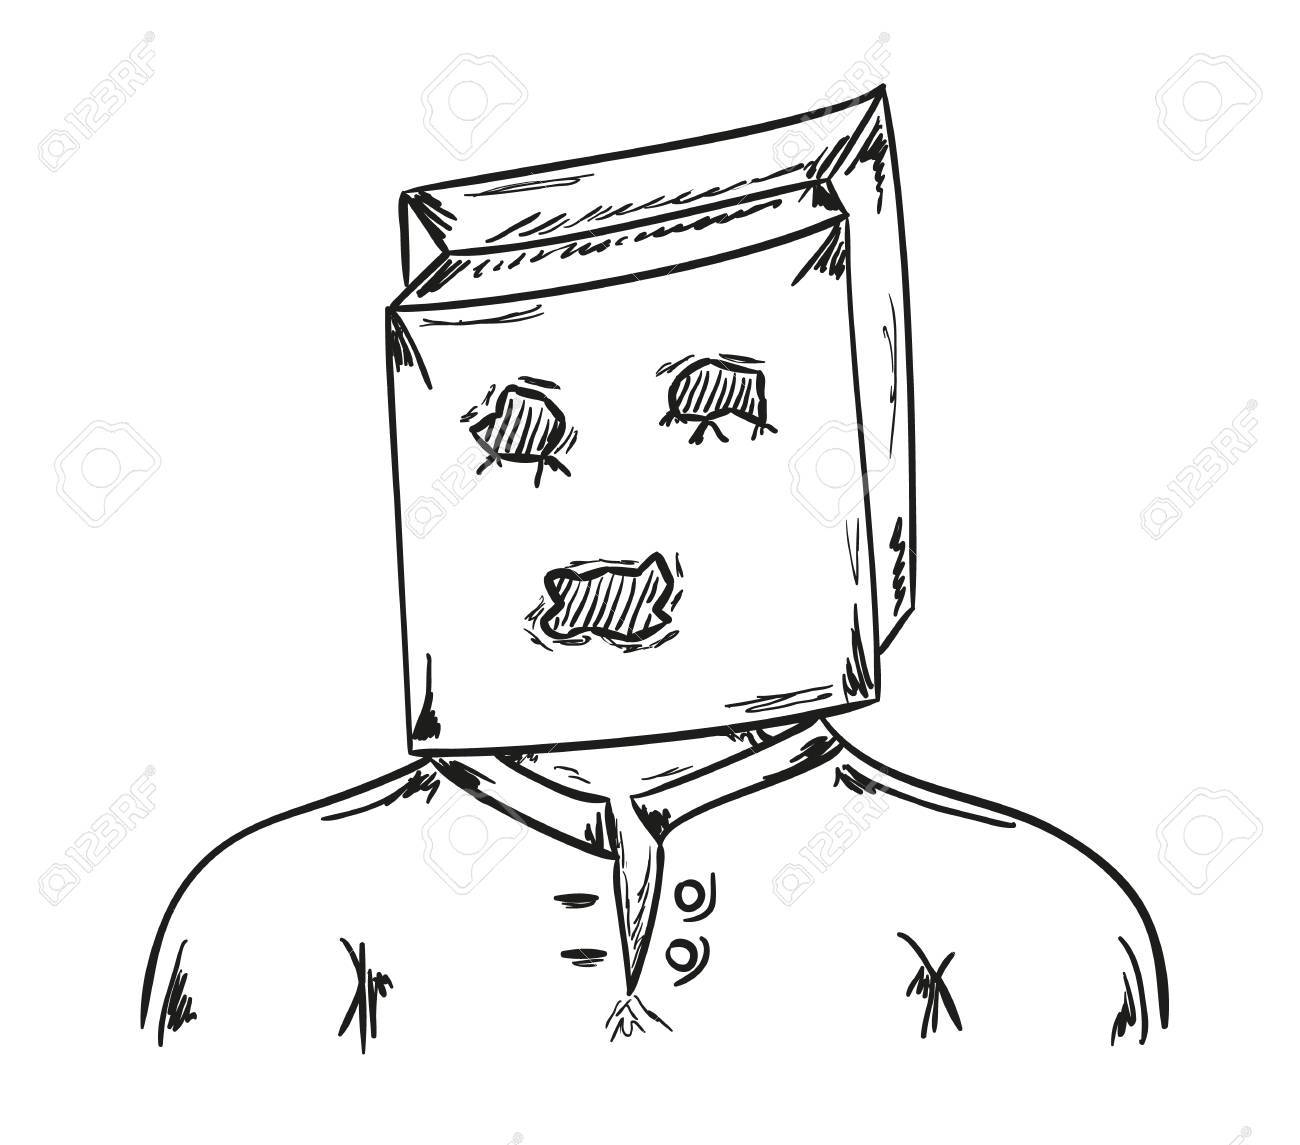 Paper bag sketch - Vector Sketch Of The Man With Paper Bag On His Head